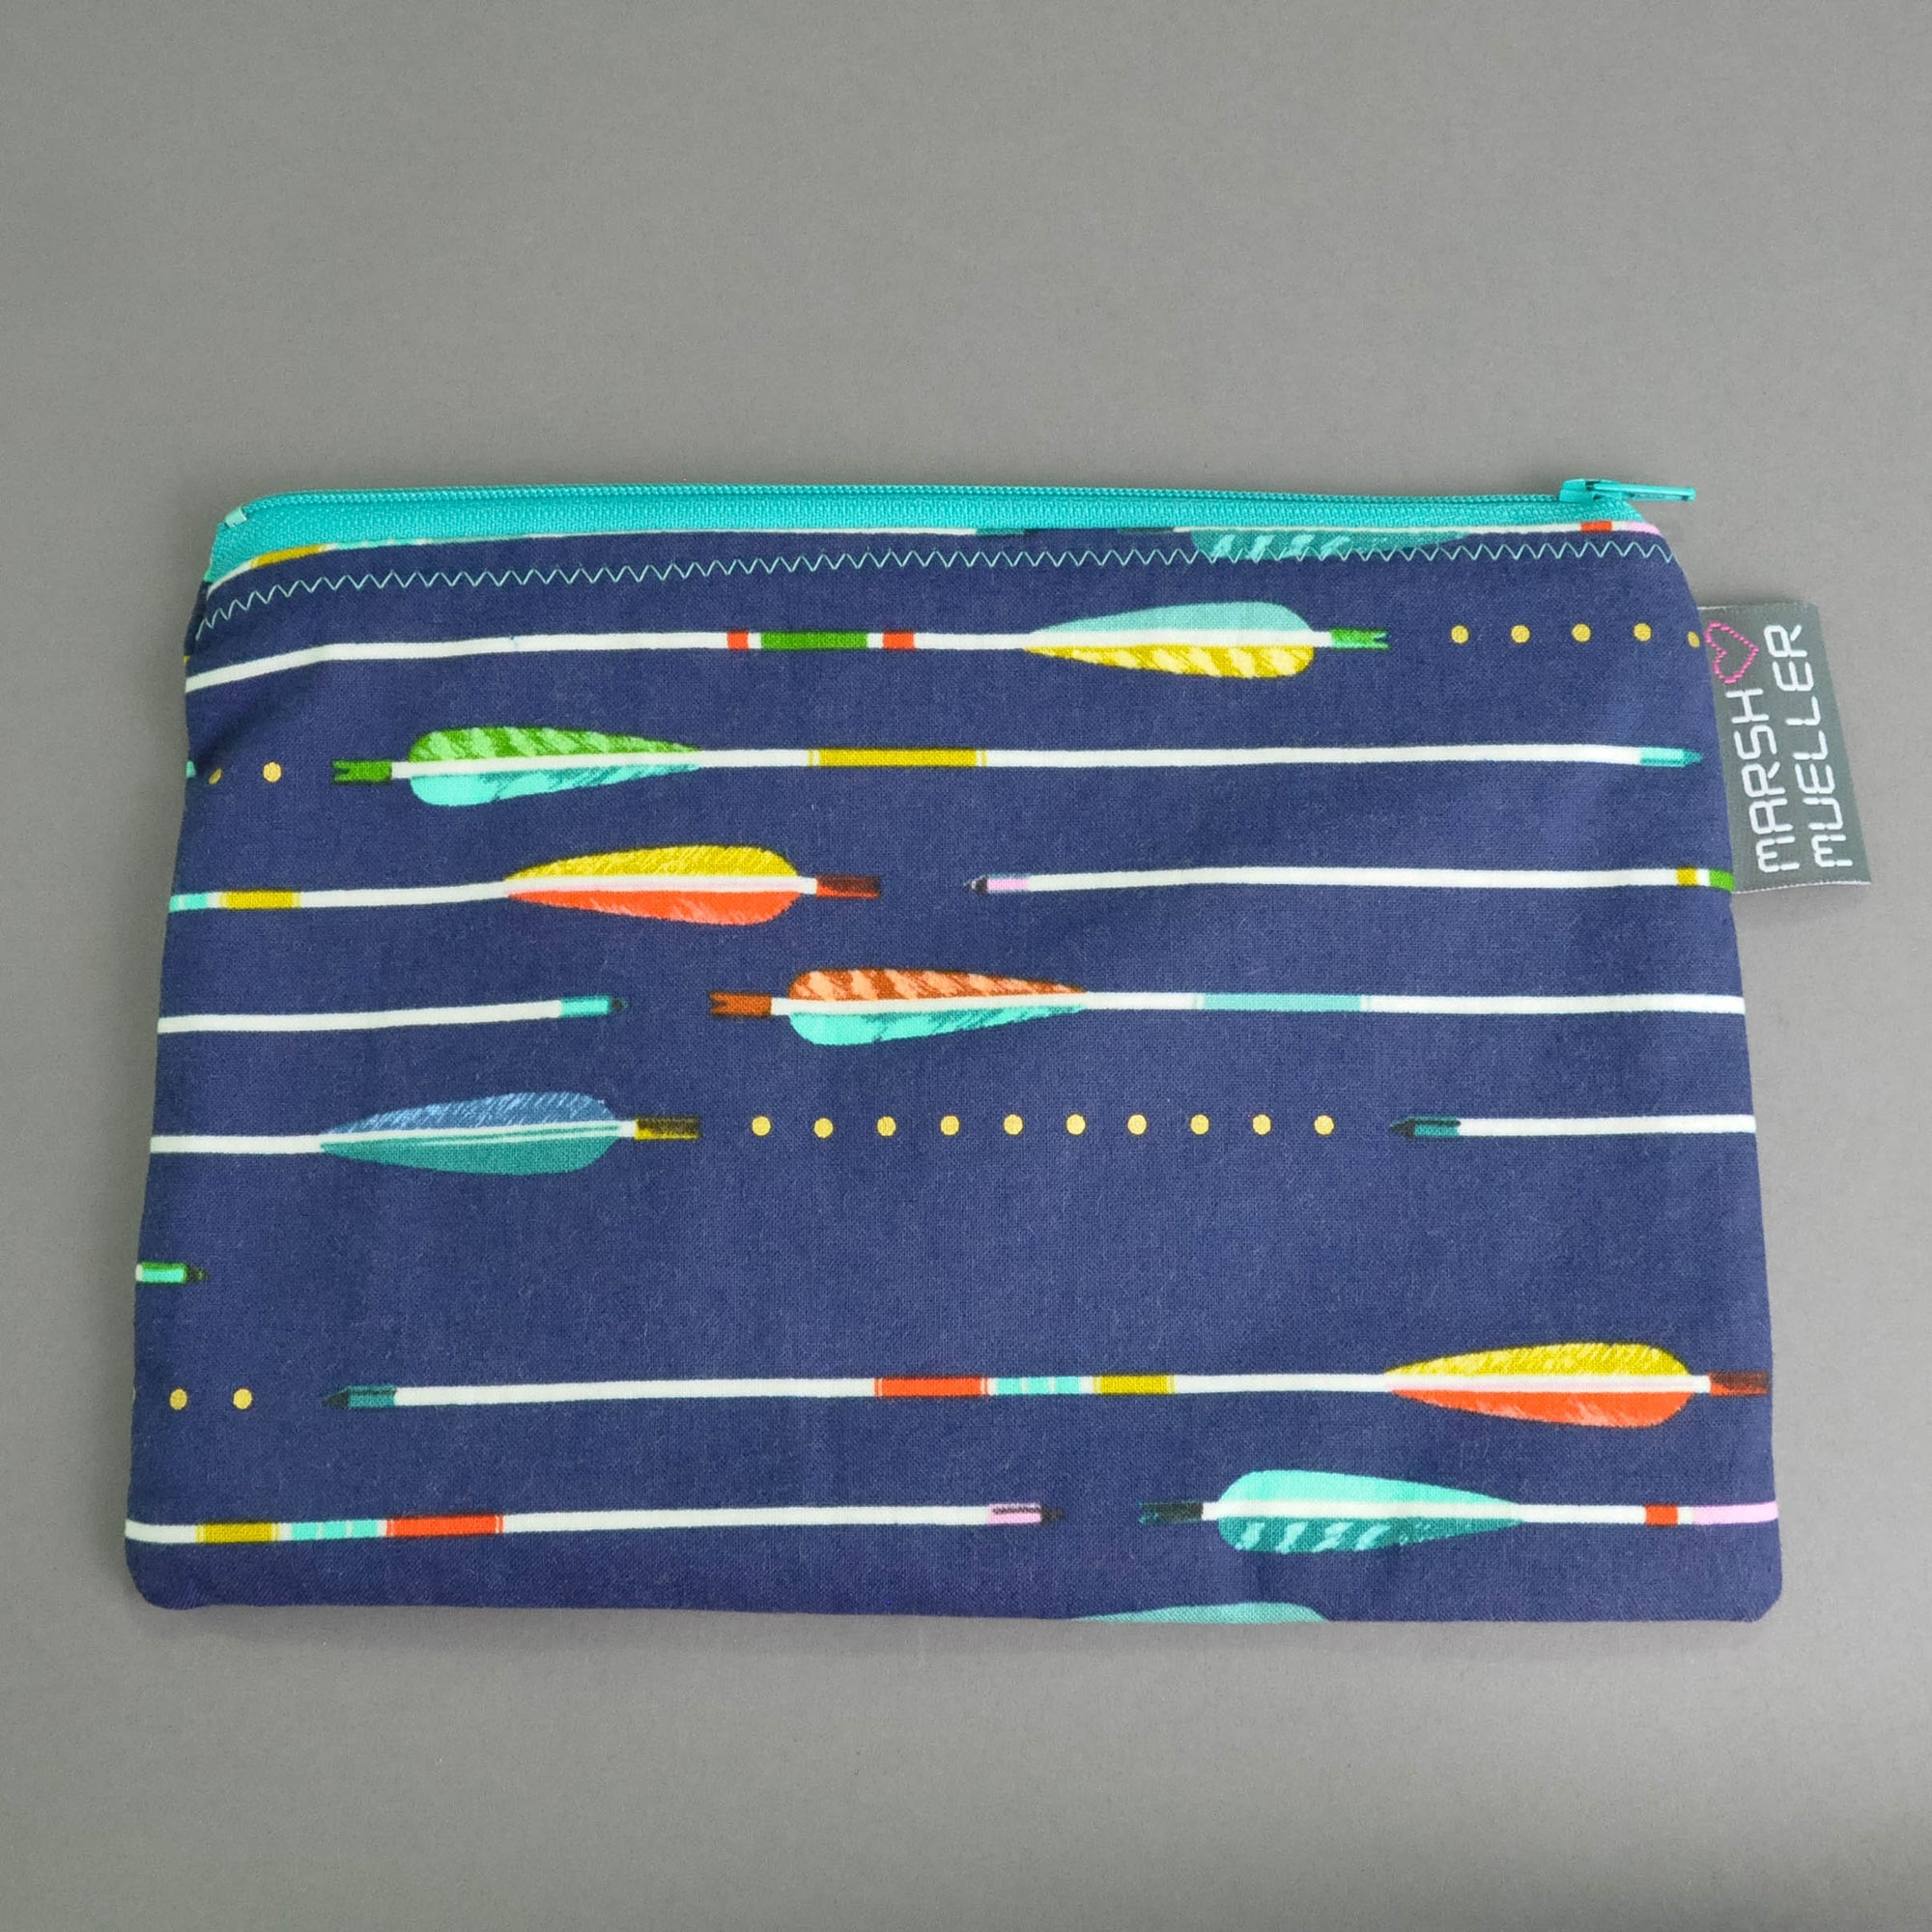 Blue Metallic Arrows Zippy Bag